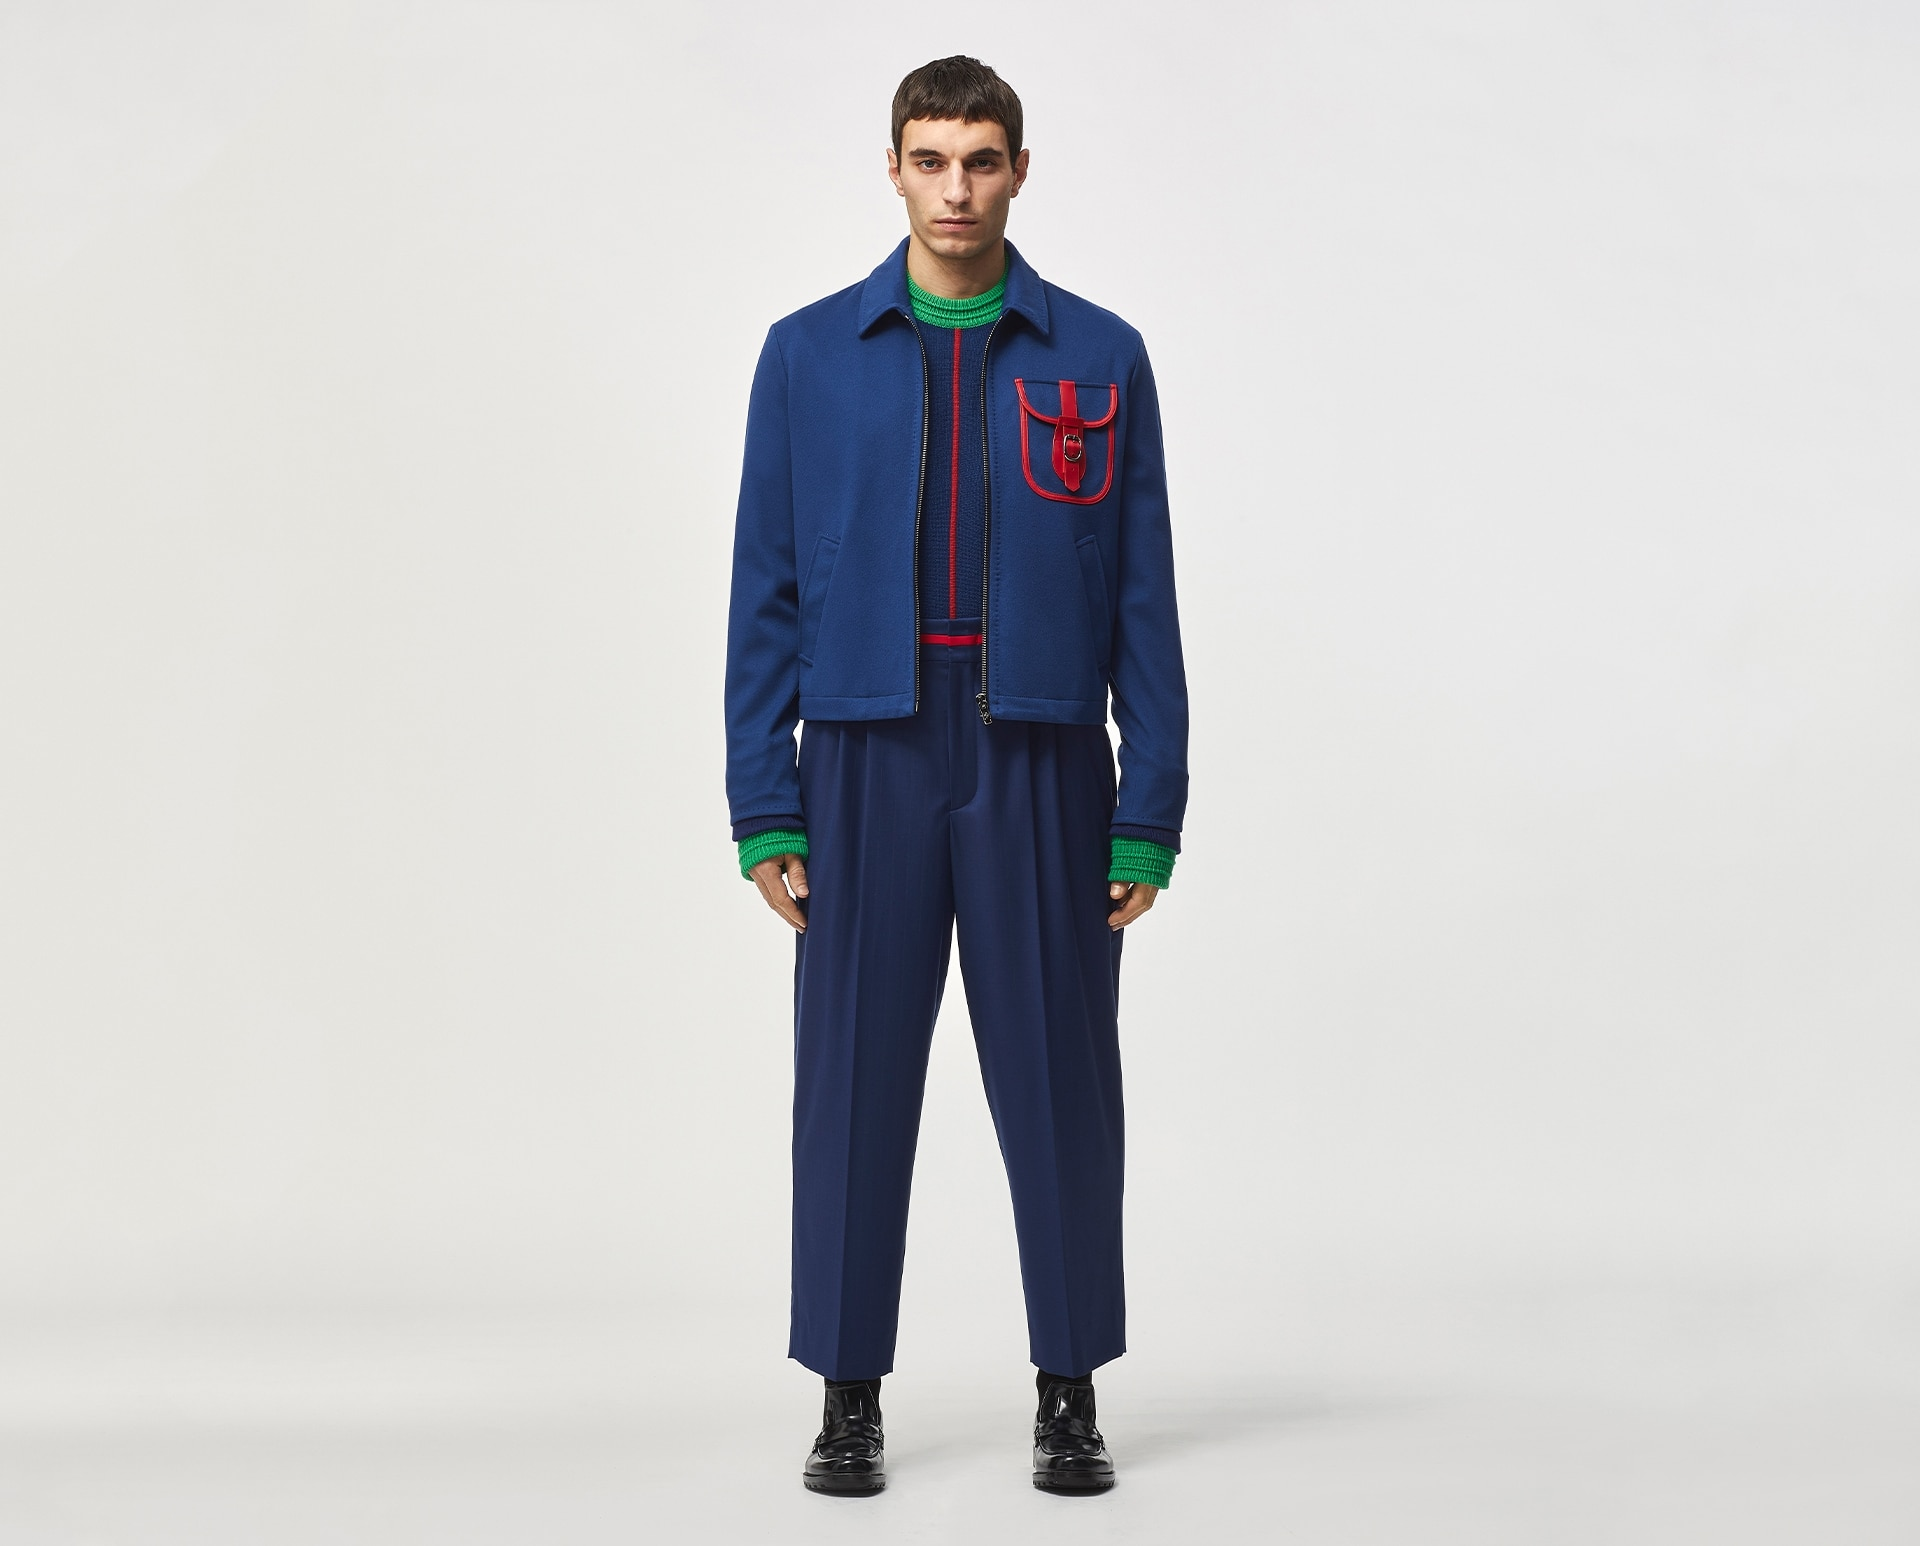 Model wearing blue sweatshirt with red and green details, blue trousers and black shoes